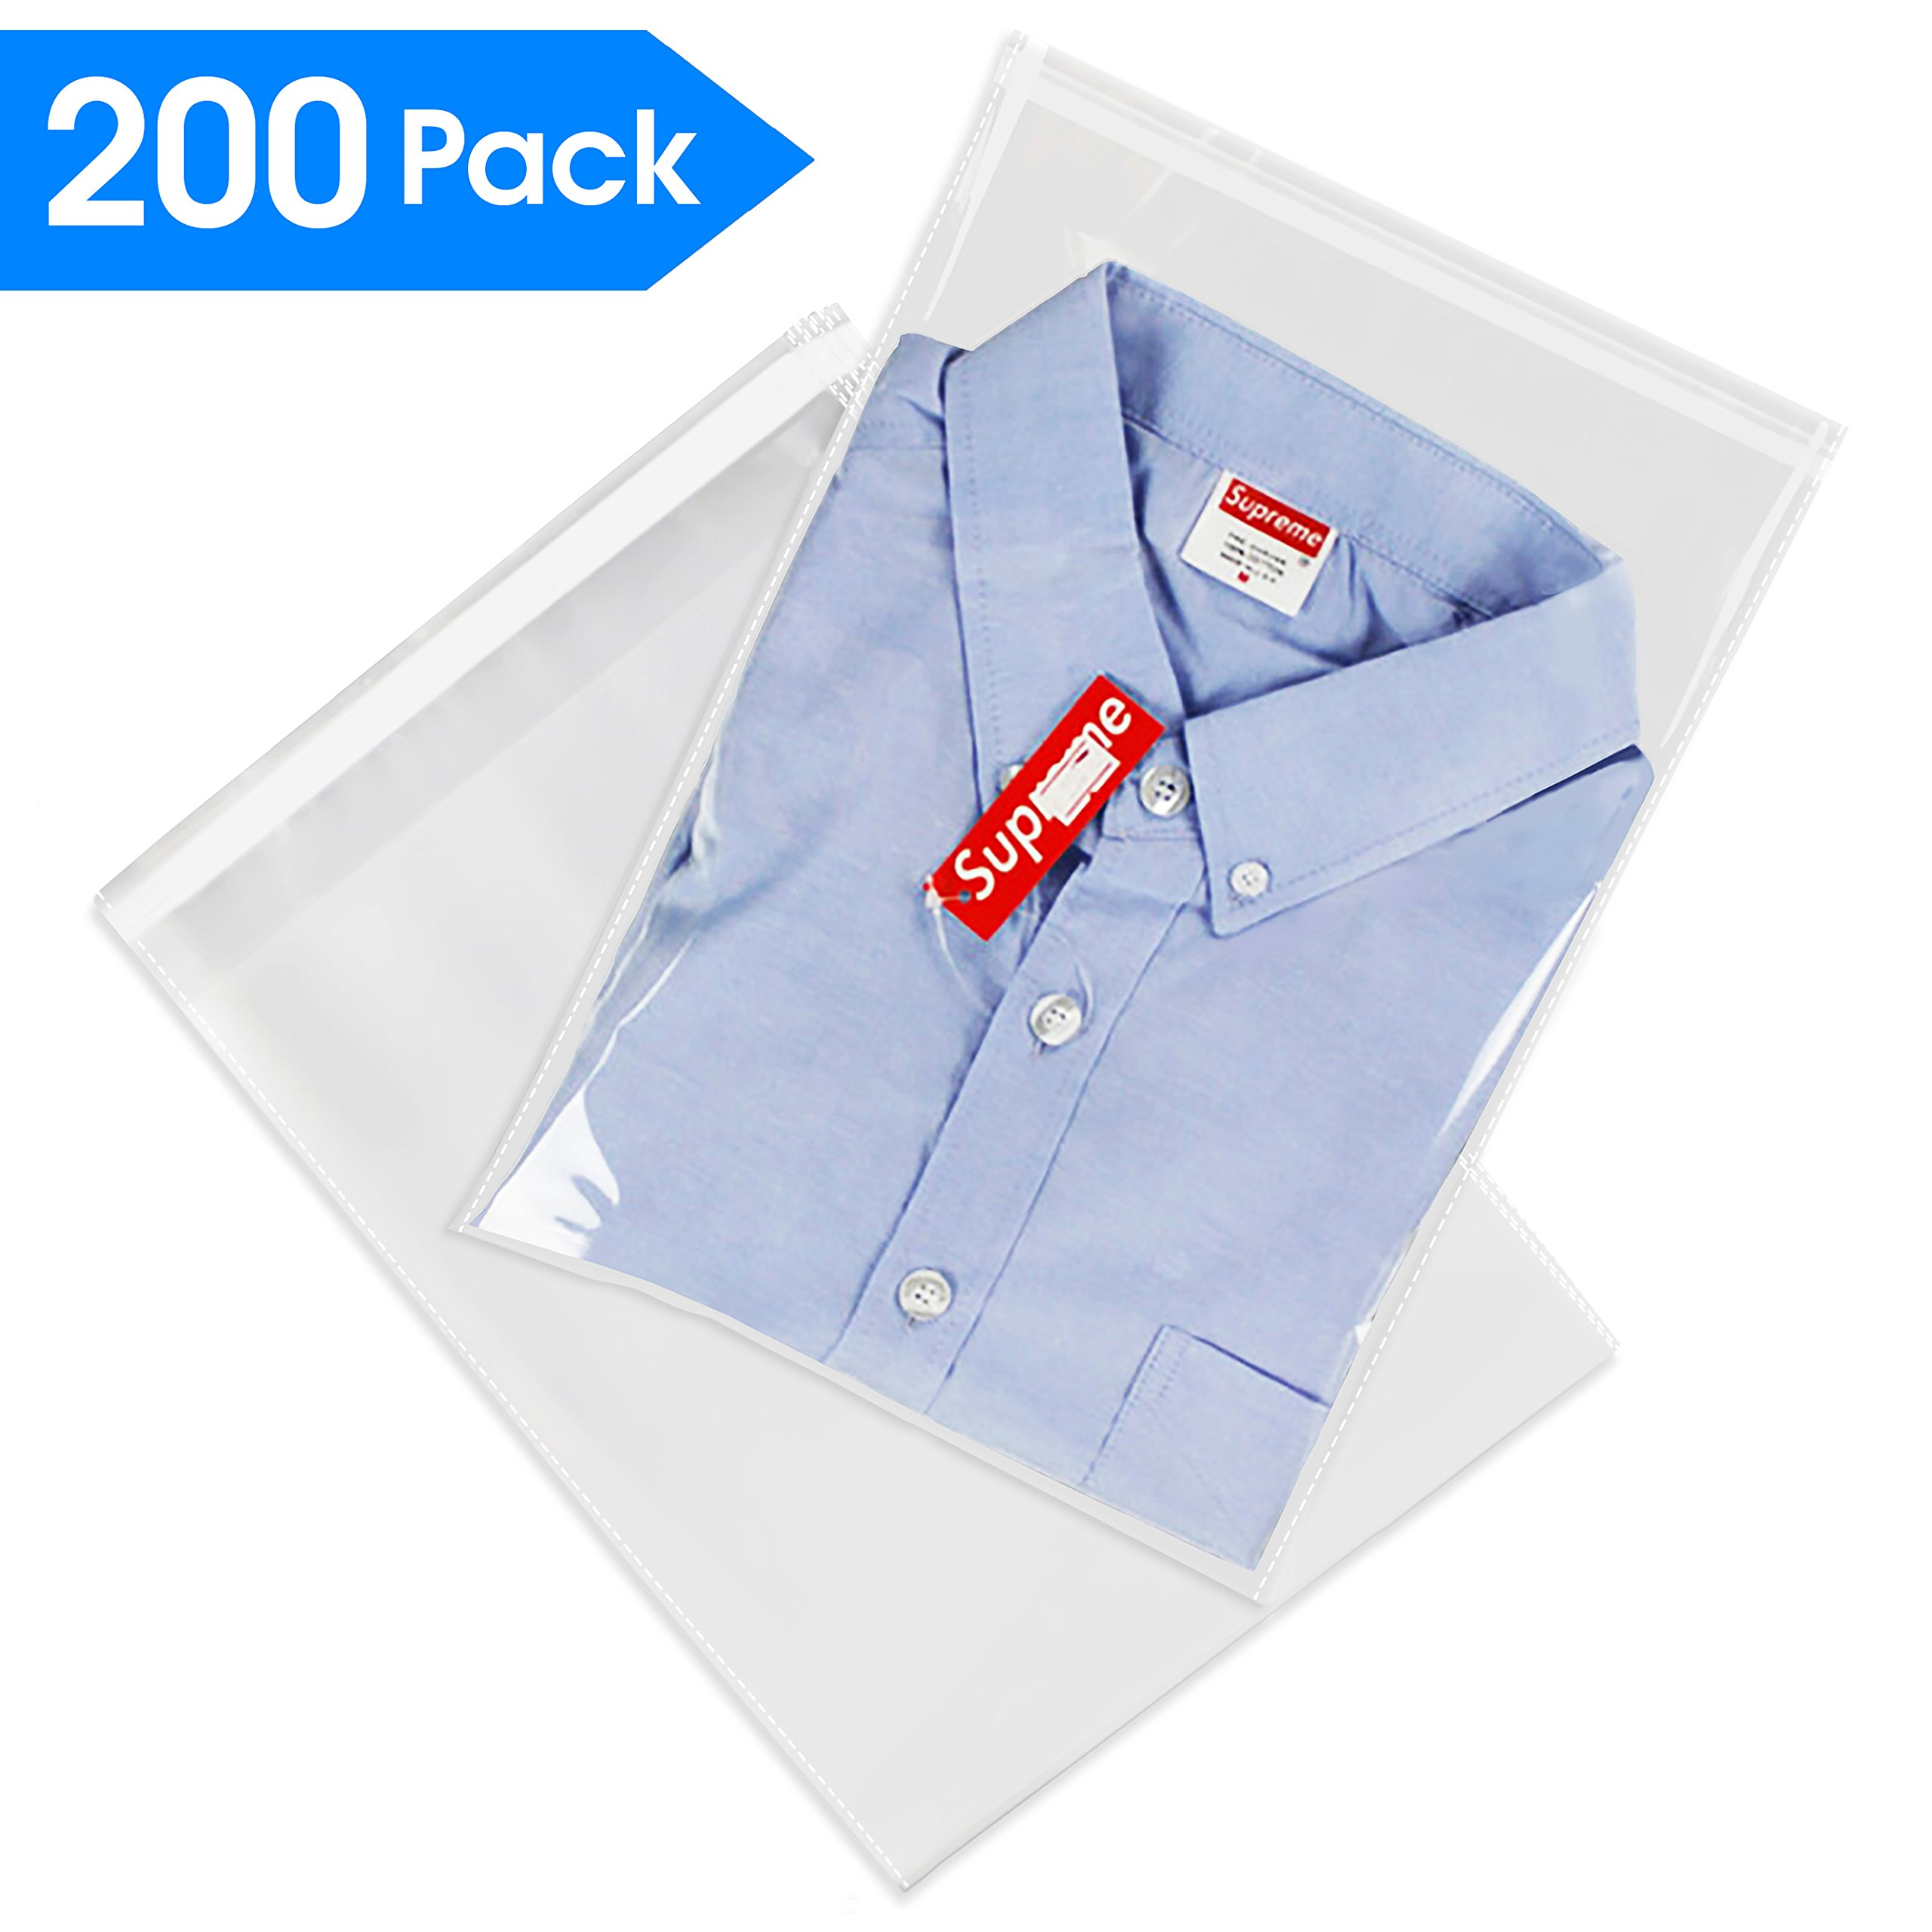 """200 Count - 9"""" X 12"""" Self Seal Clear Cello Cellophane Resealable Plastic Poly Bags - Perfect for Packaging Clothing, Shirts (More Sizes Available)"""